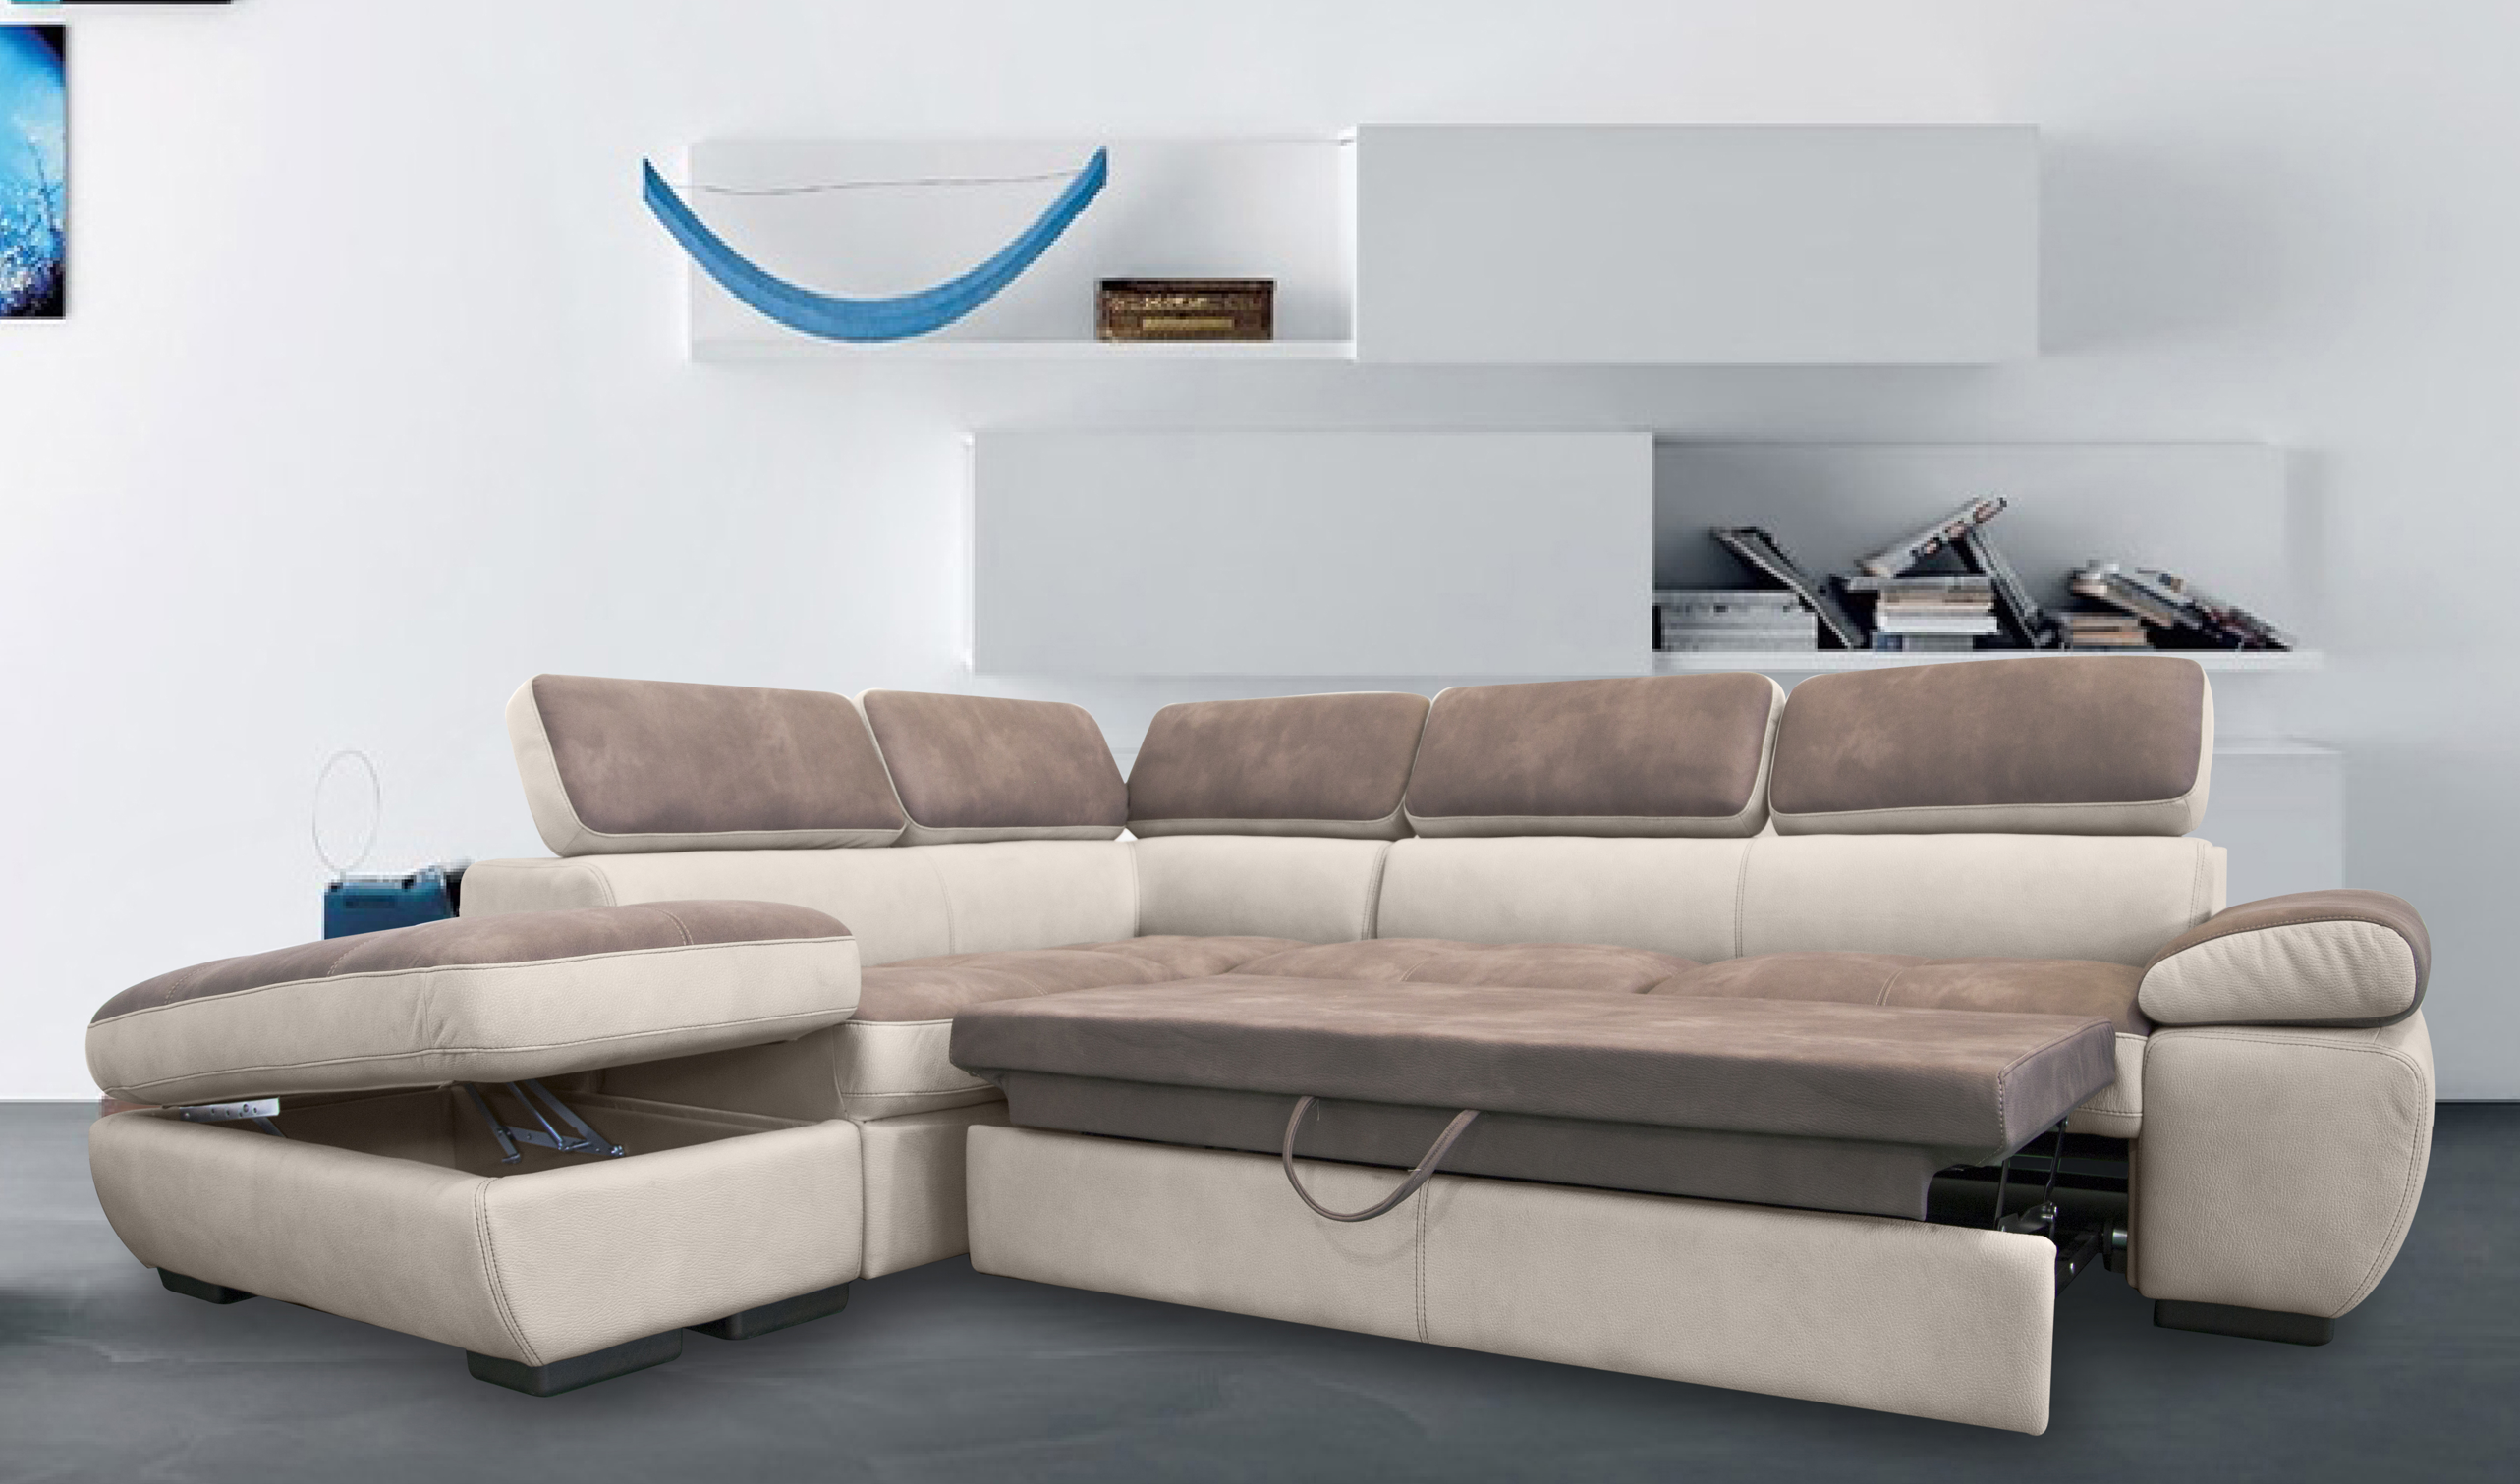 Awesome divano letto angolare offerta gallery for Outlet casa